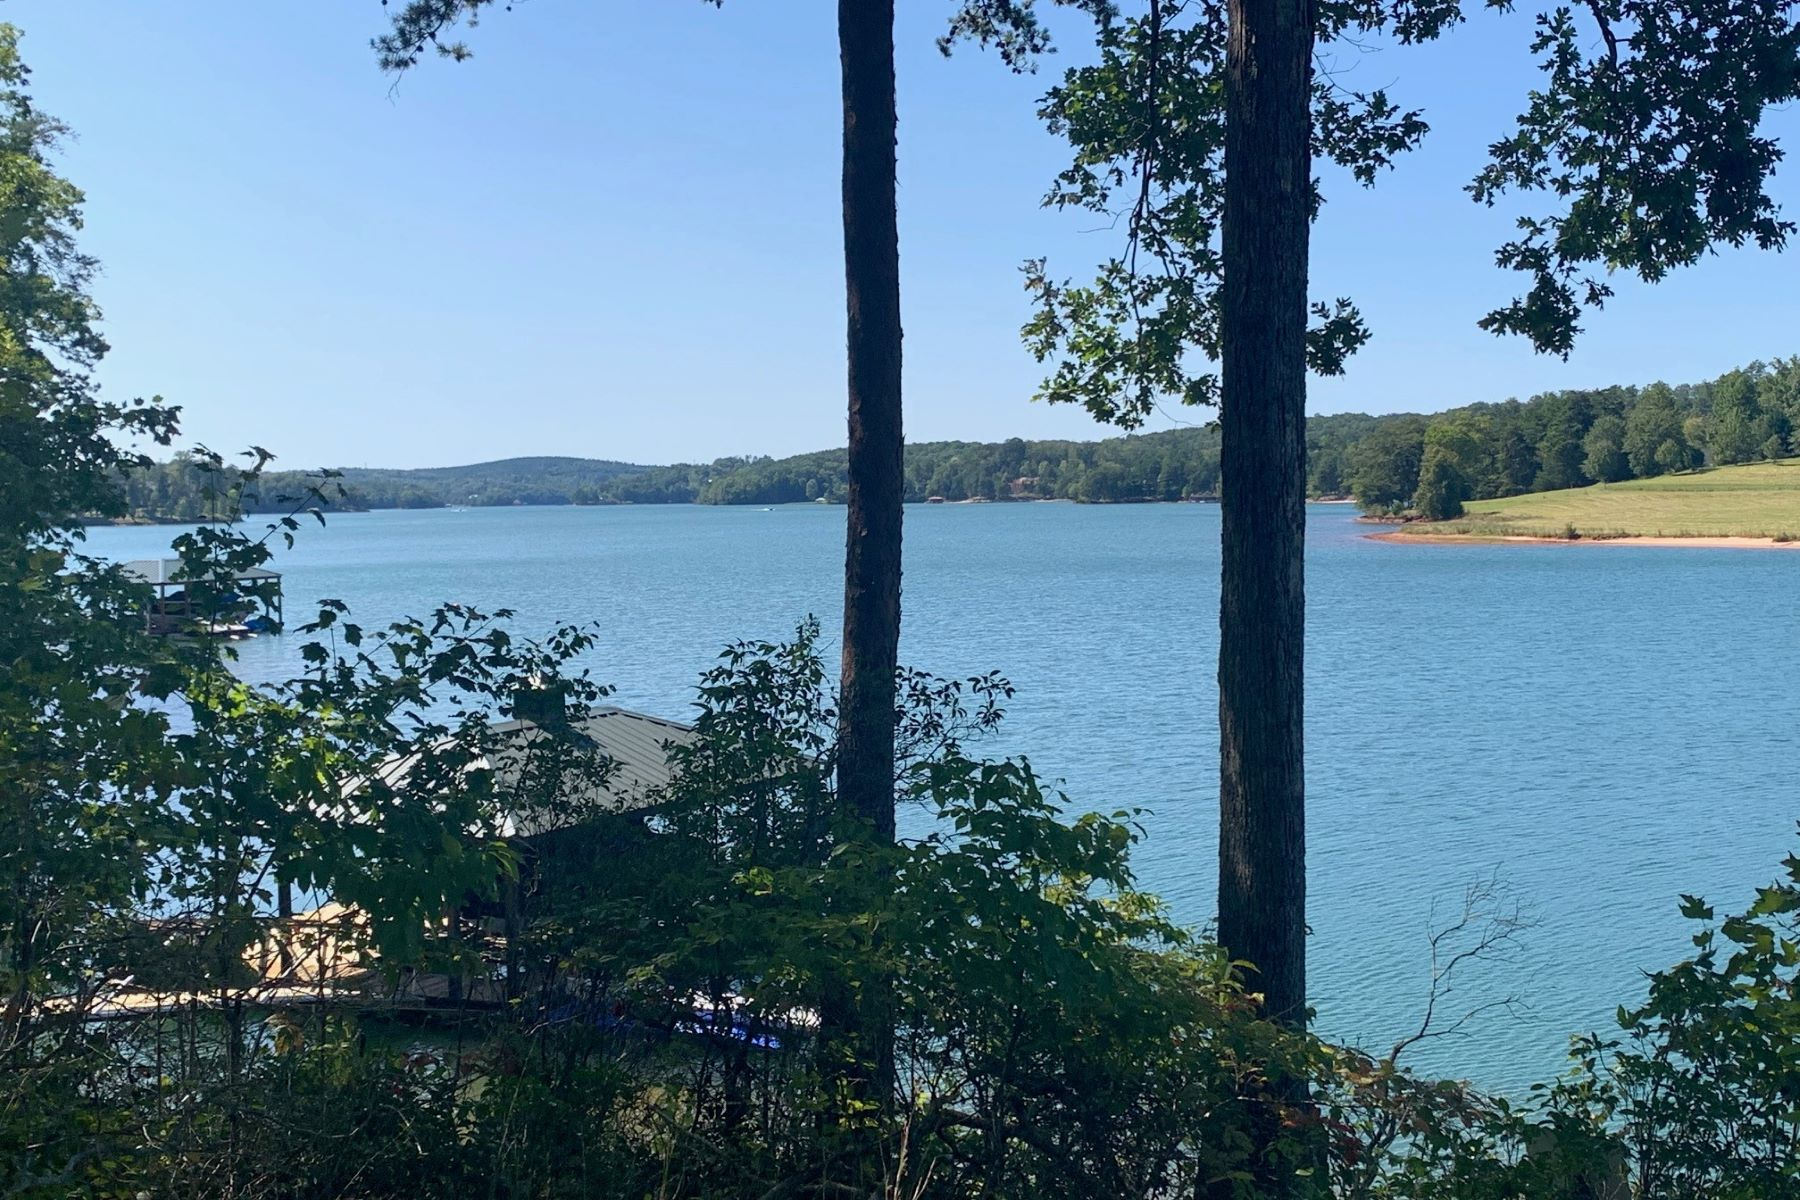 Land for Sale at Waterfront with Mountain Views CKS 4B-99 Six Mile, South Carolina 29682 United States